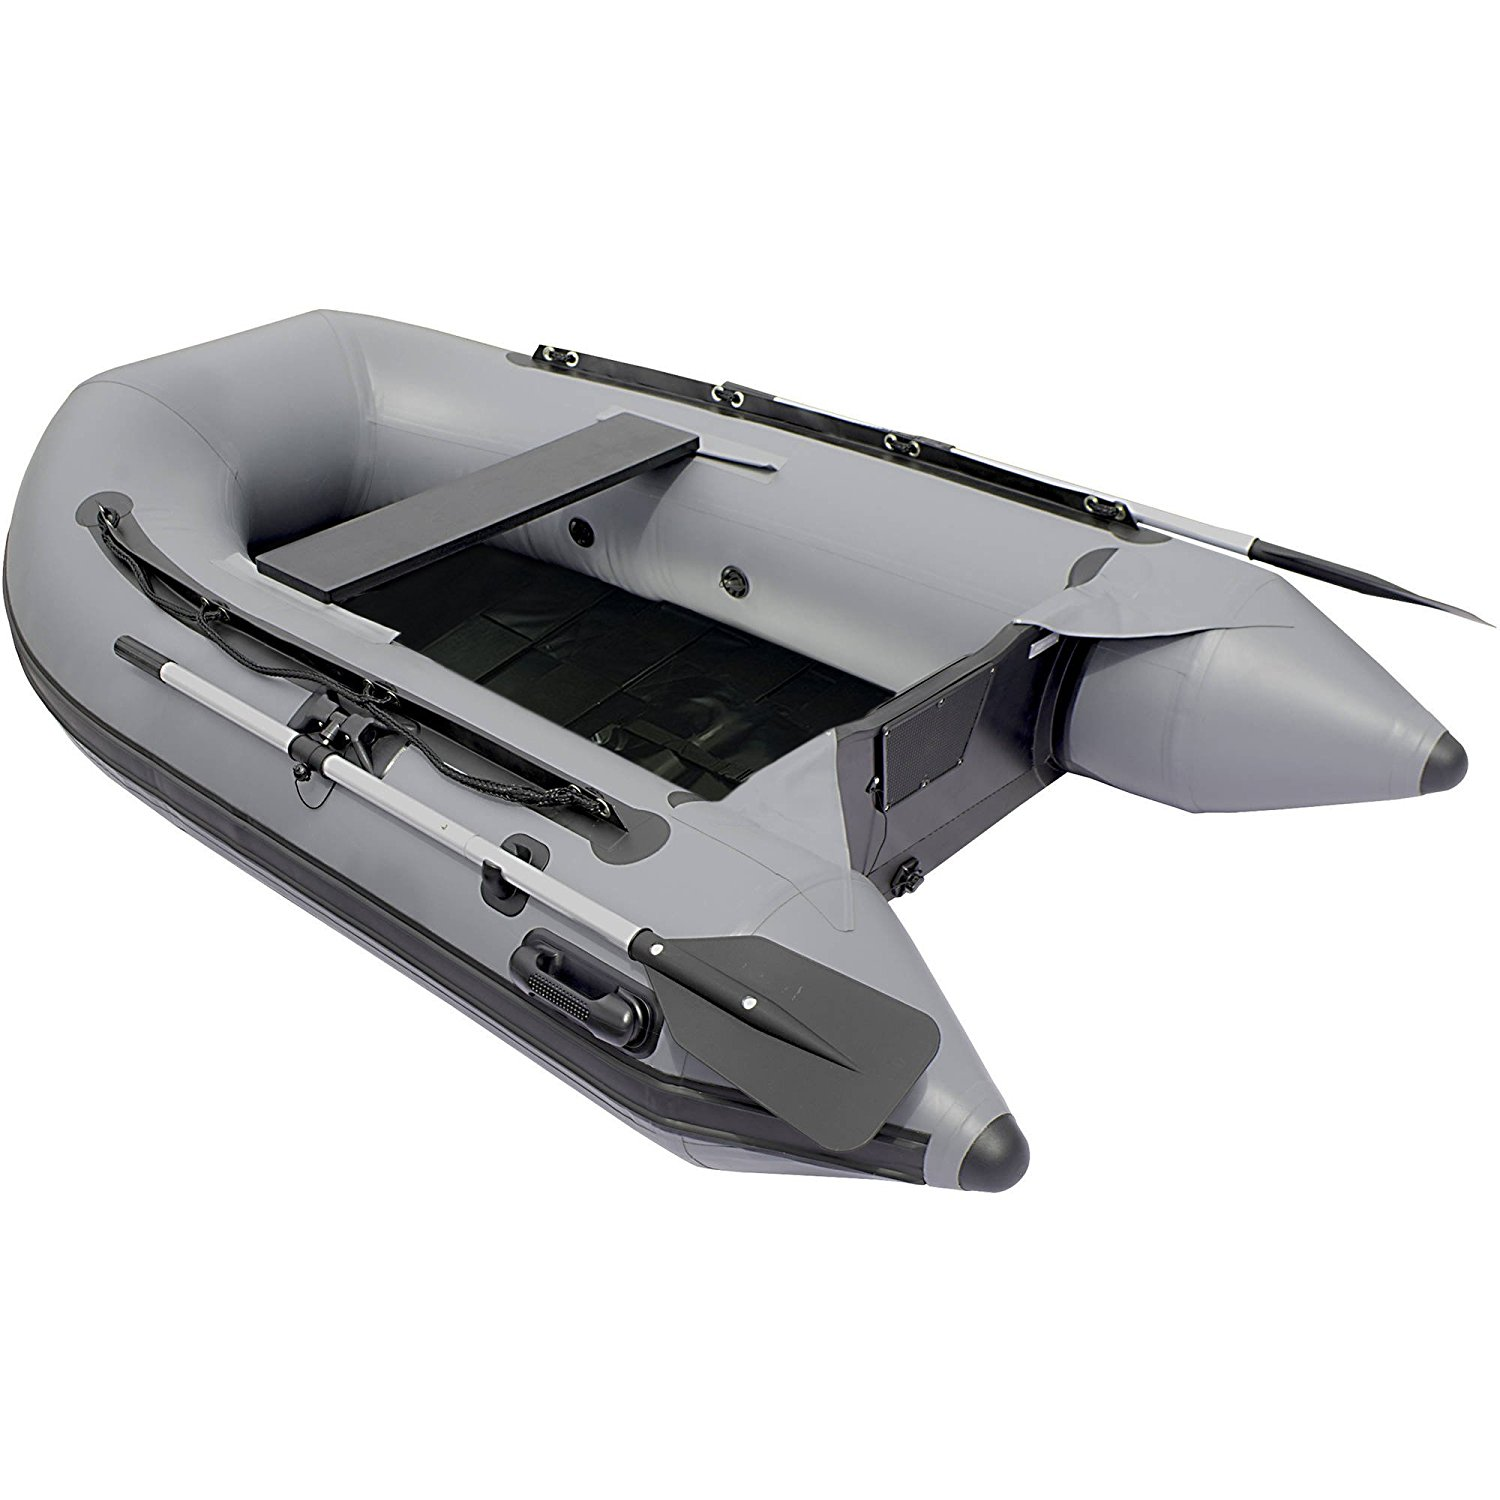 BTSDSL250BK 8.5 Foot Inflatable Boat with Pre-Installed Slide Slat Deck